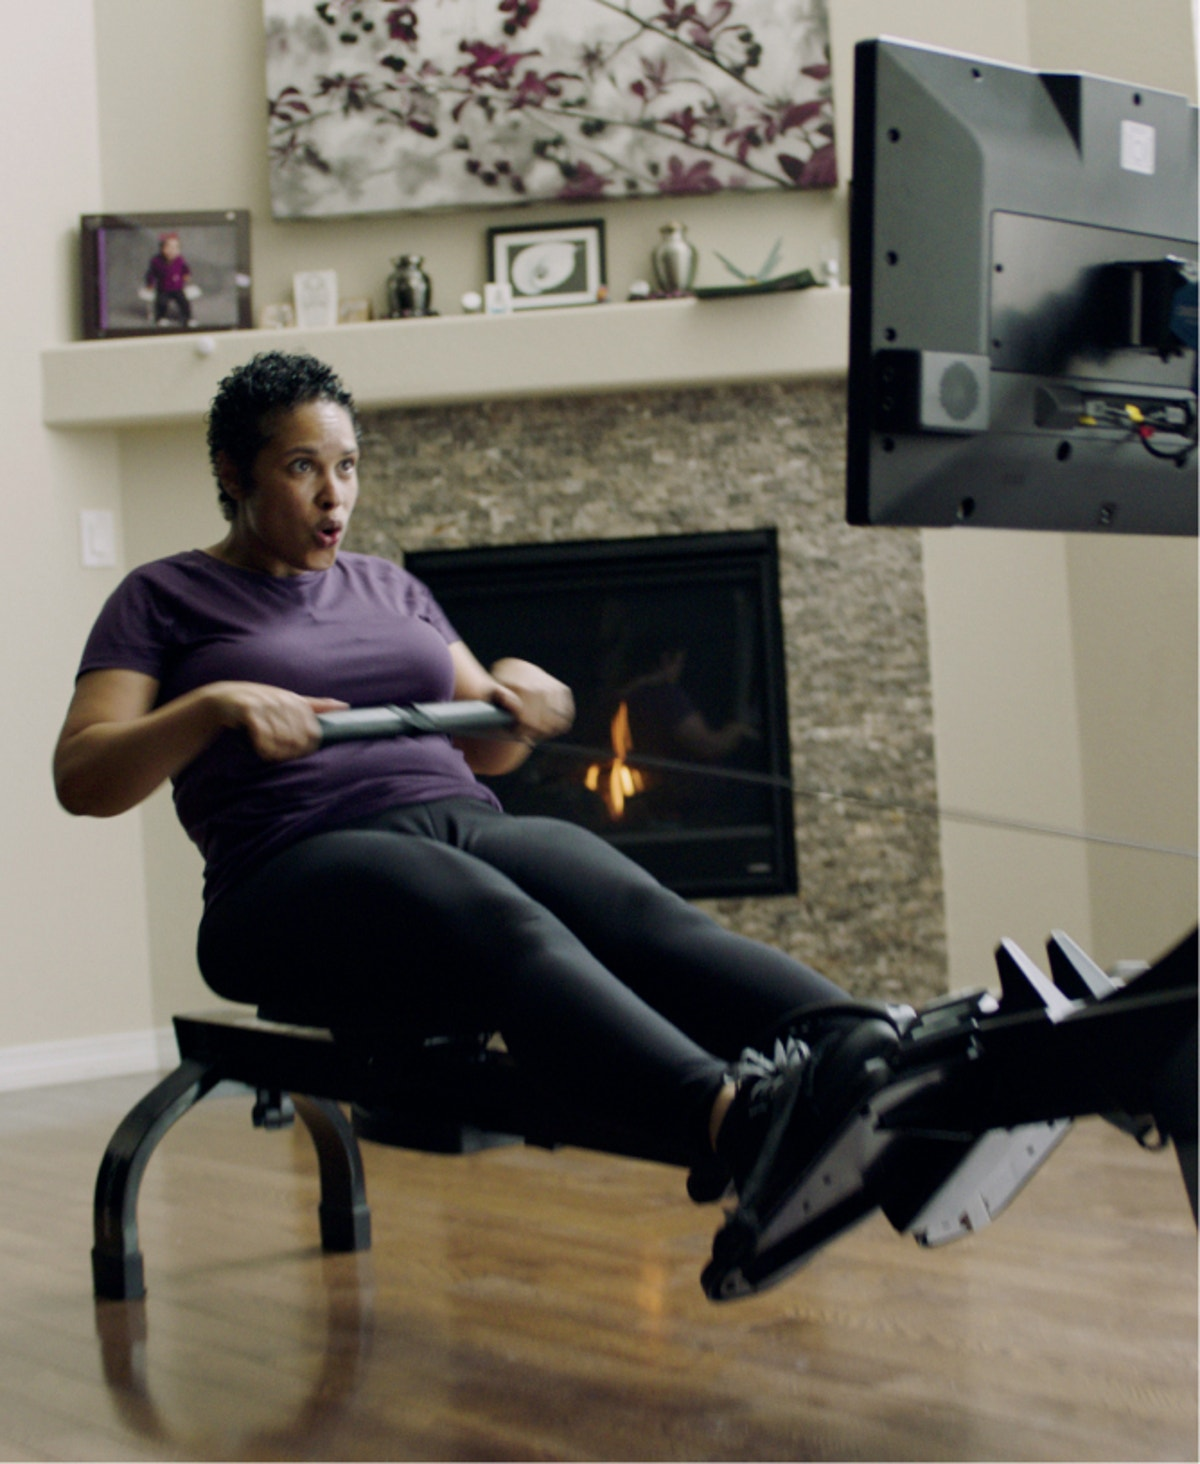 Woman intensely rowing on iFIT rowing machine.